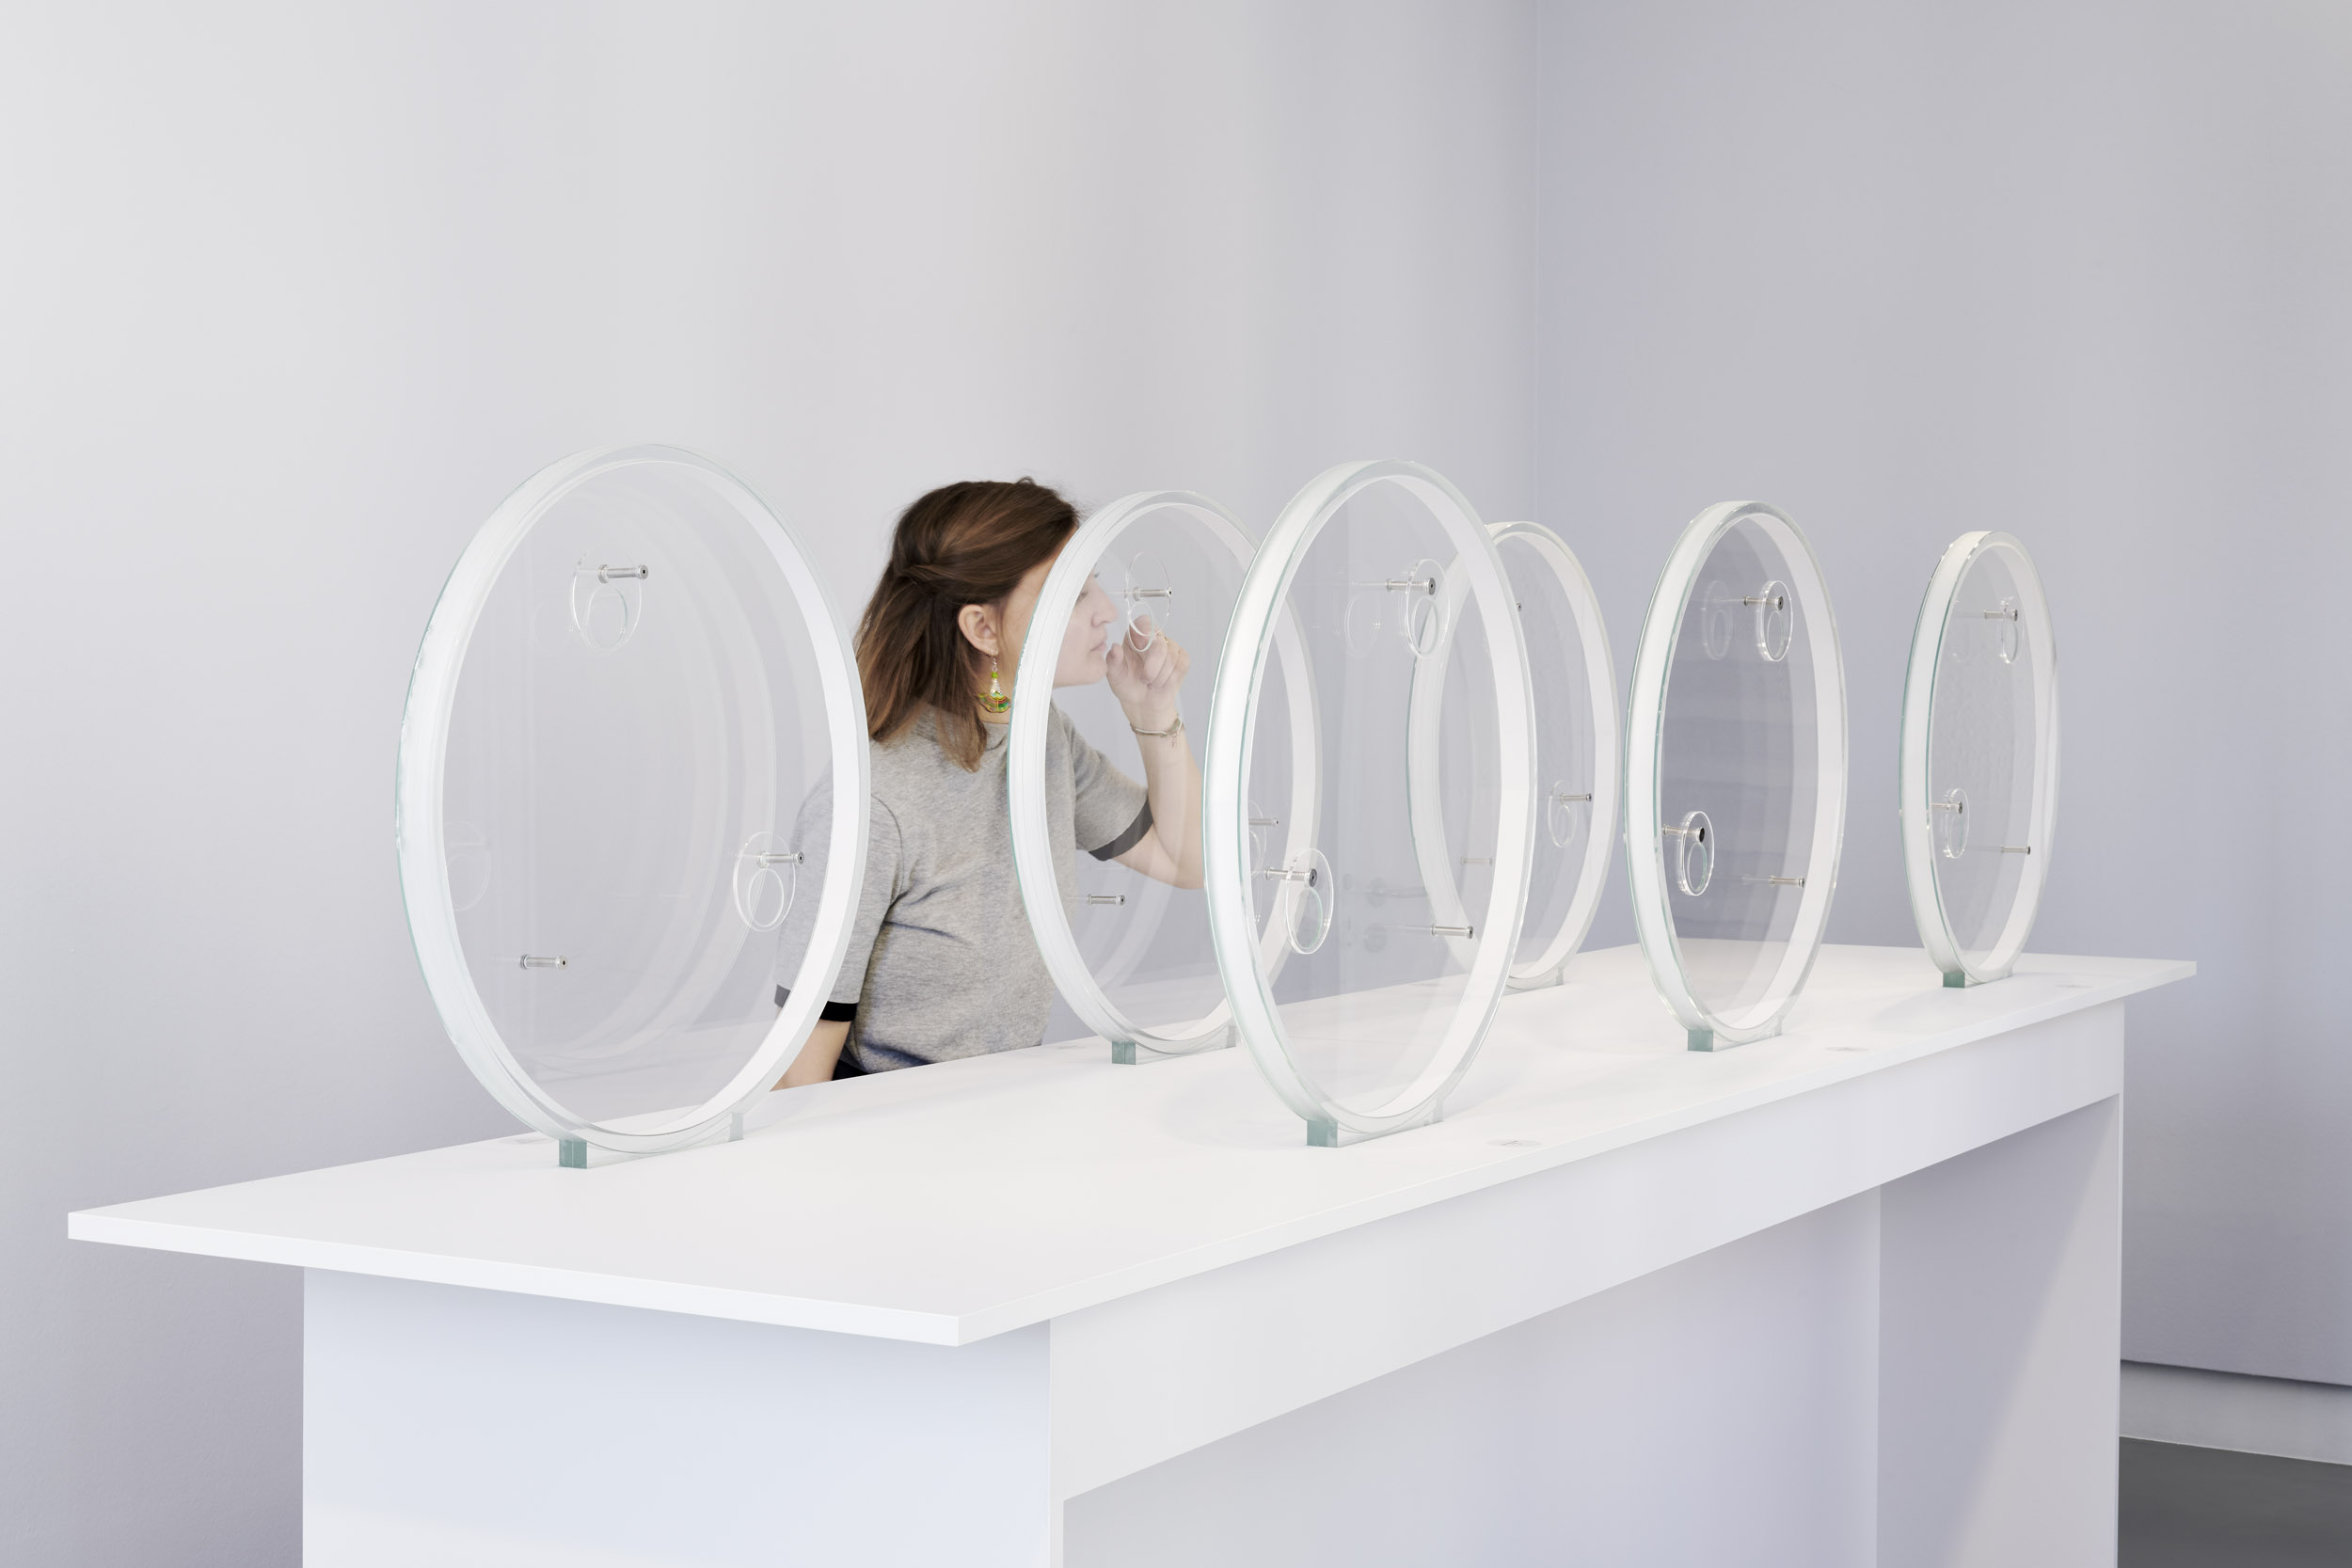 A visitor smells perfumes within round glass vessels